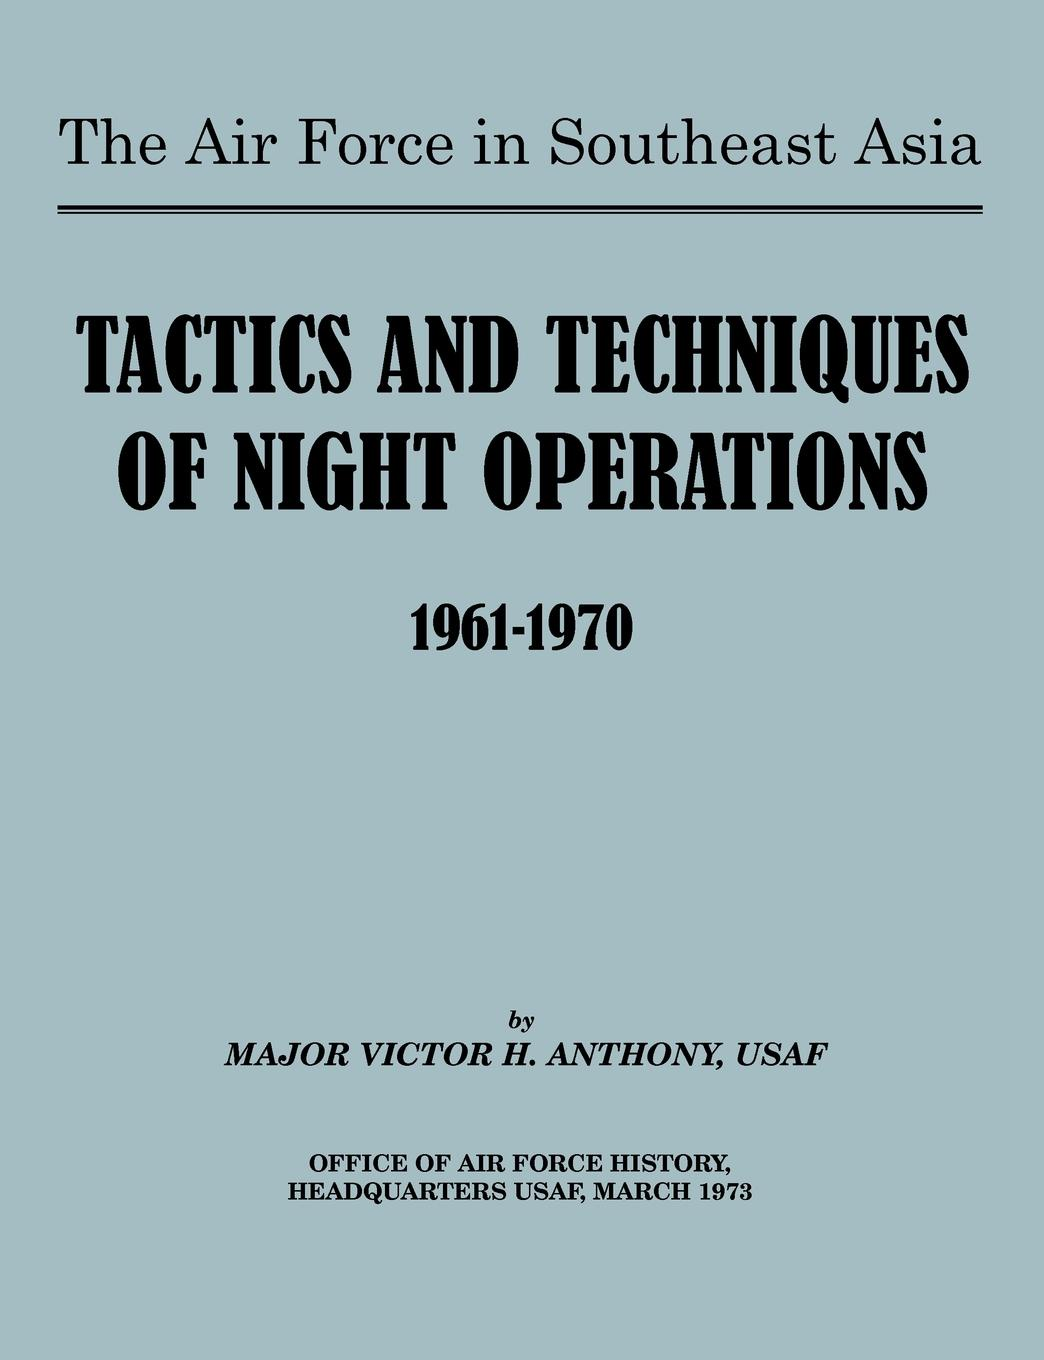 Victor B. Anthony, U.S. Office of Air Force History The Air Force in Southeast Asia. Tactics and Techniques of Night Operations 1961-1970 daniel b mcnickle the night of the hippo